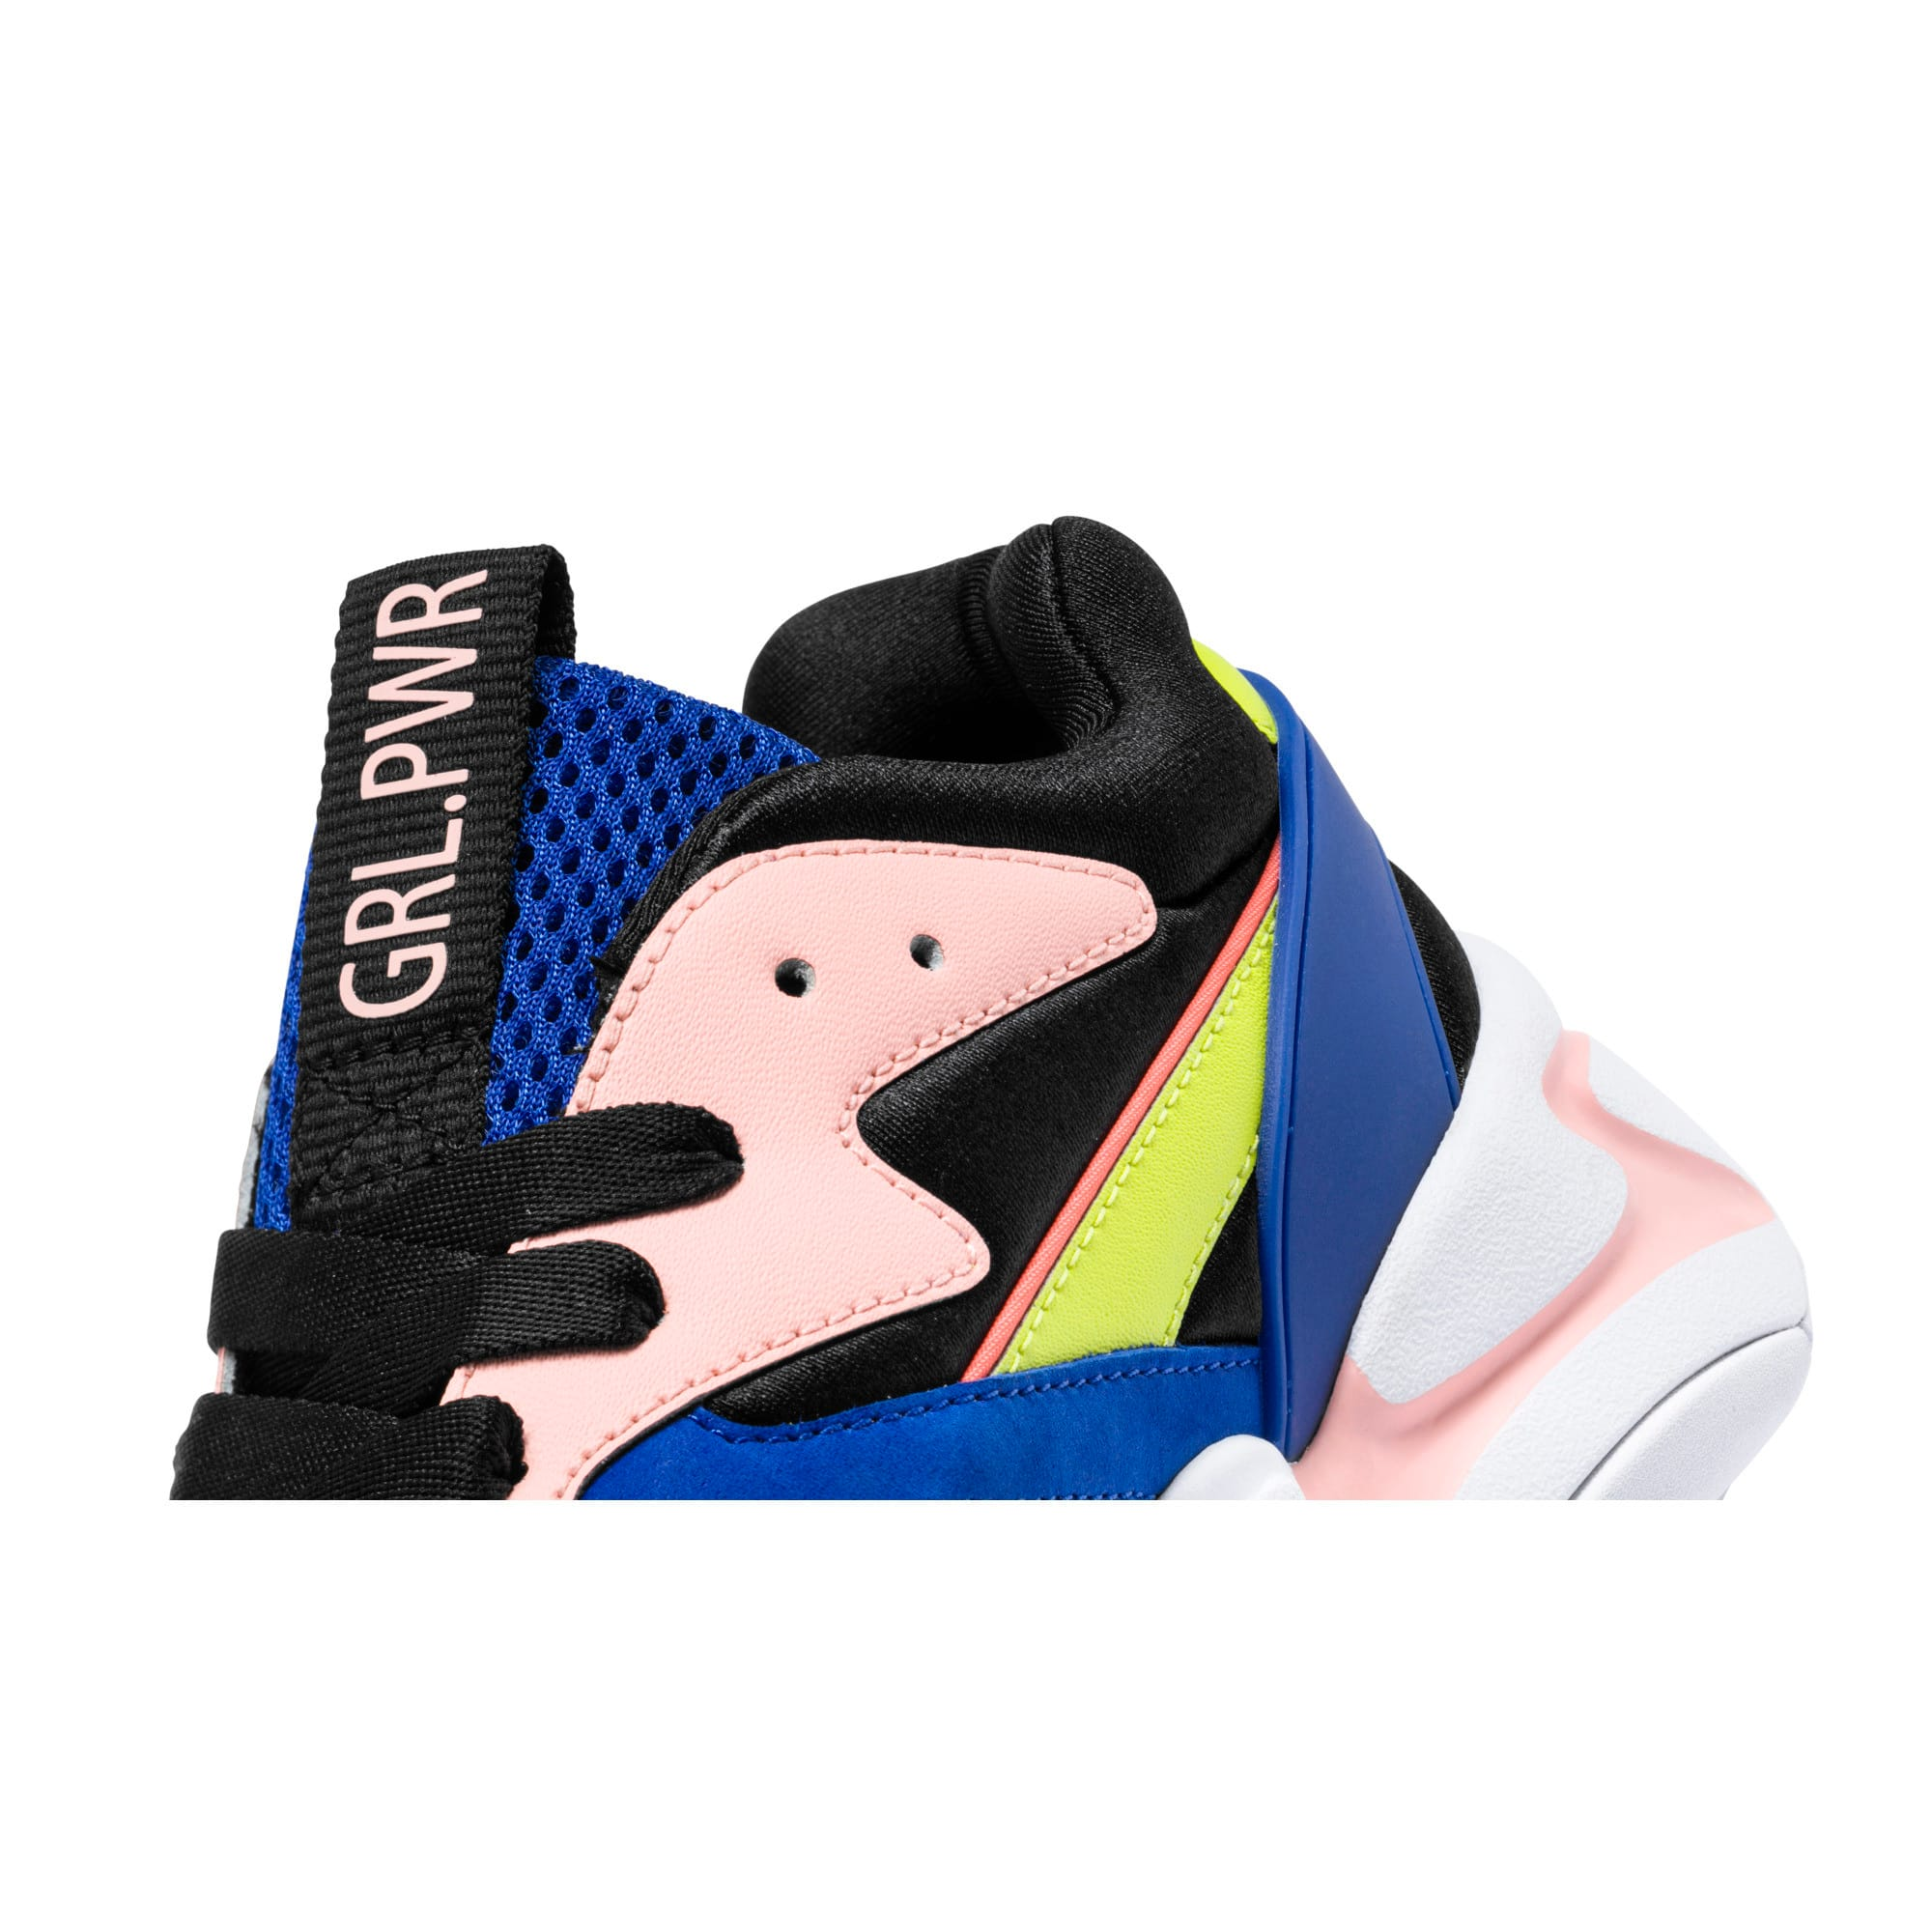 Thumbnail 8 of プーマ ノーヴァ GRL PWR ウィメンズ, Puma Black-Surf The Web, medium-JPN